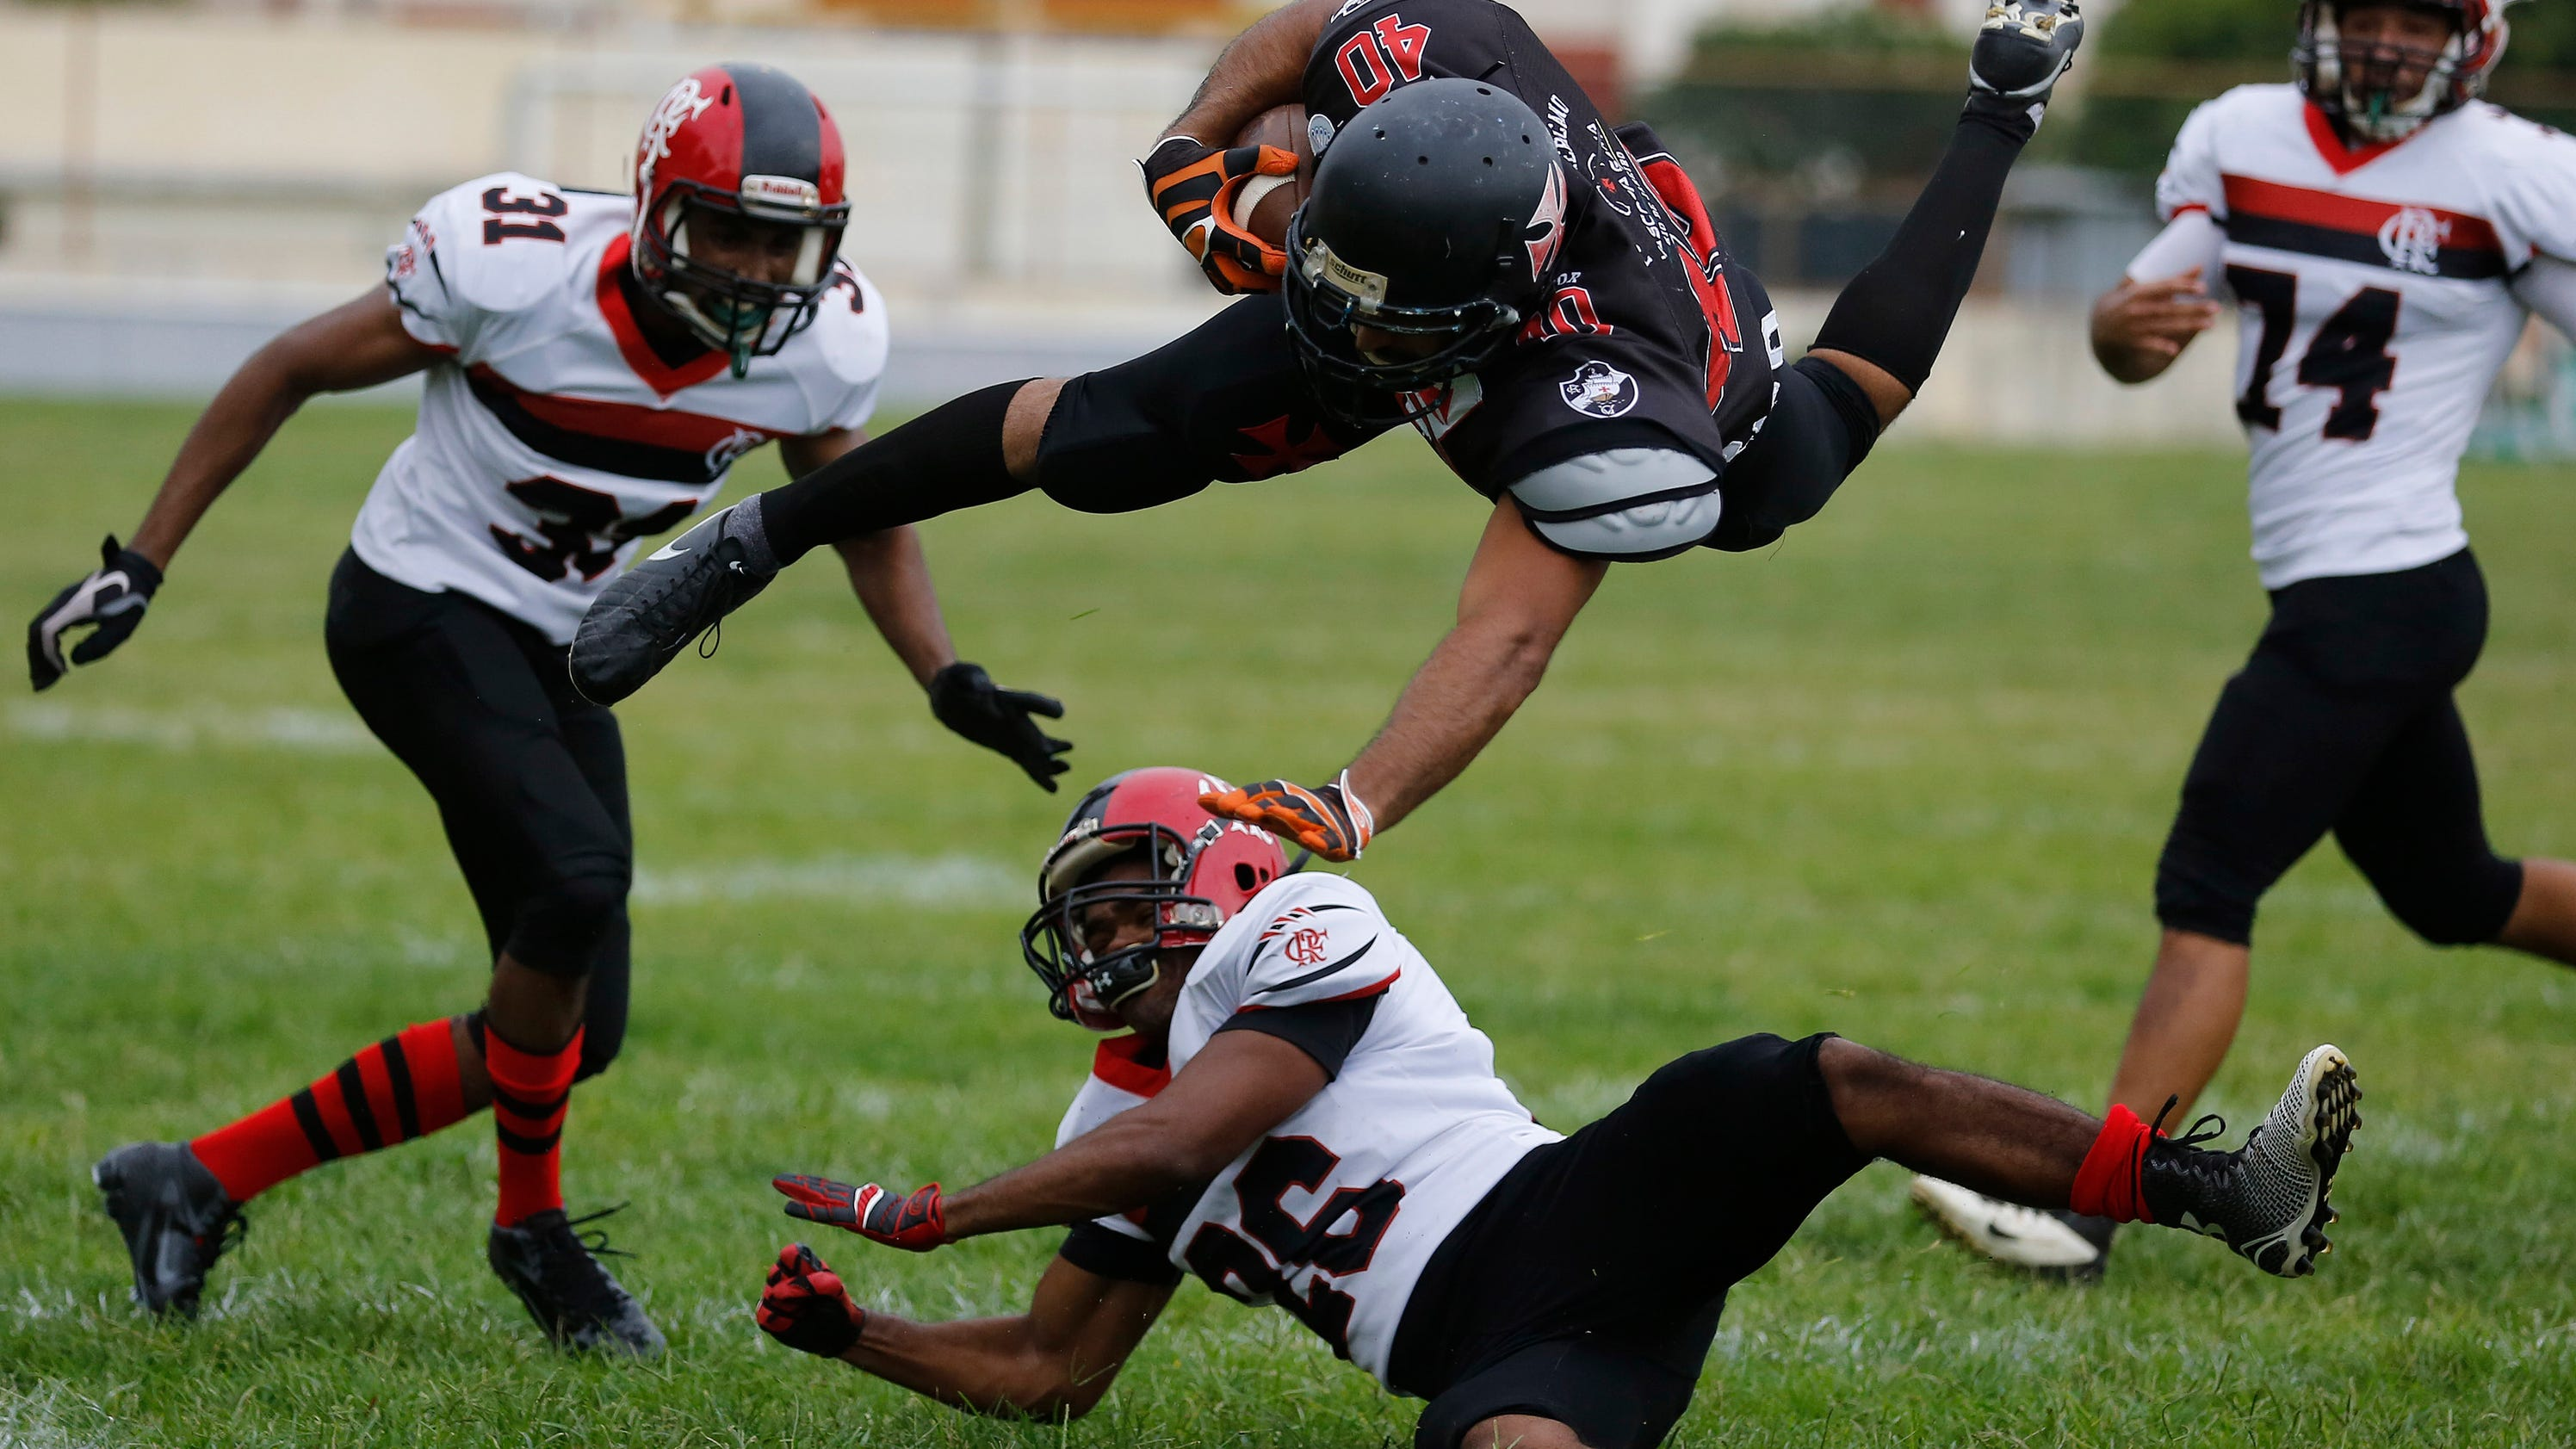 American football growing quickly in Brazil